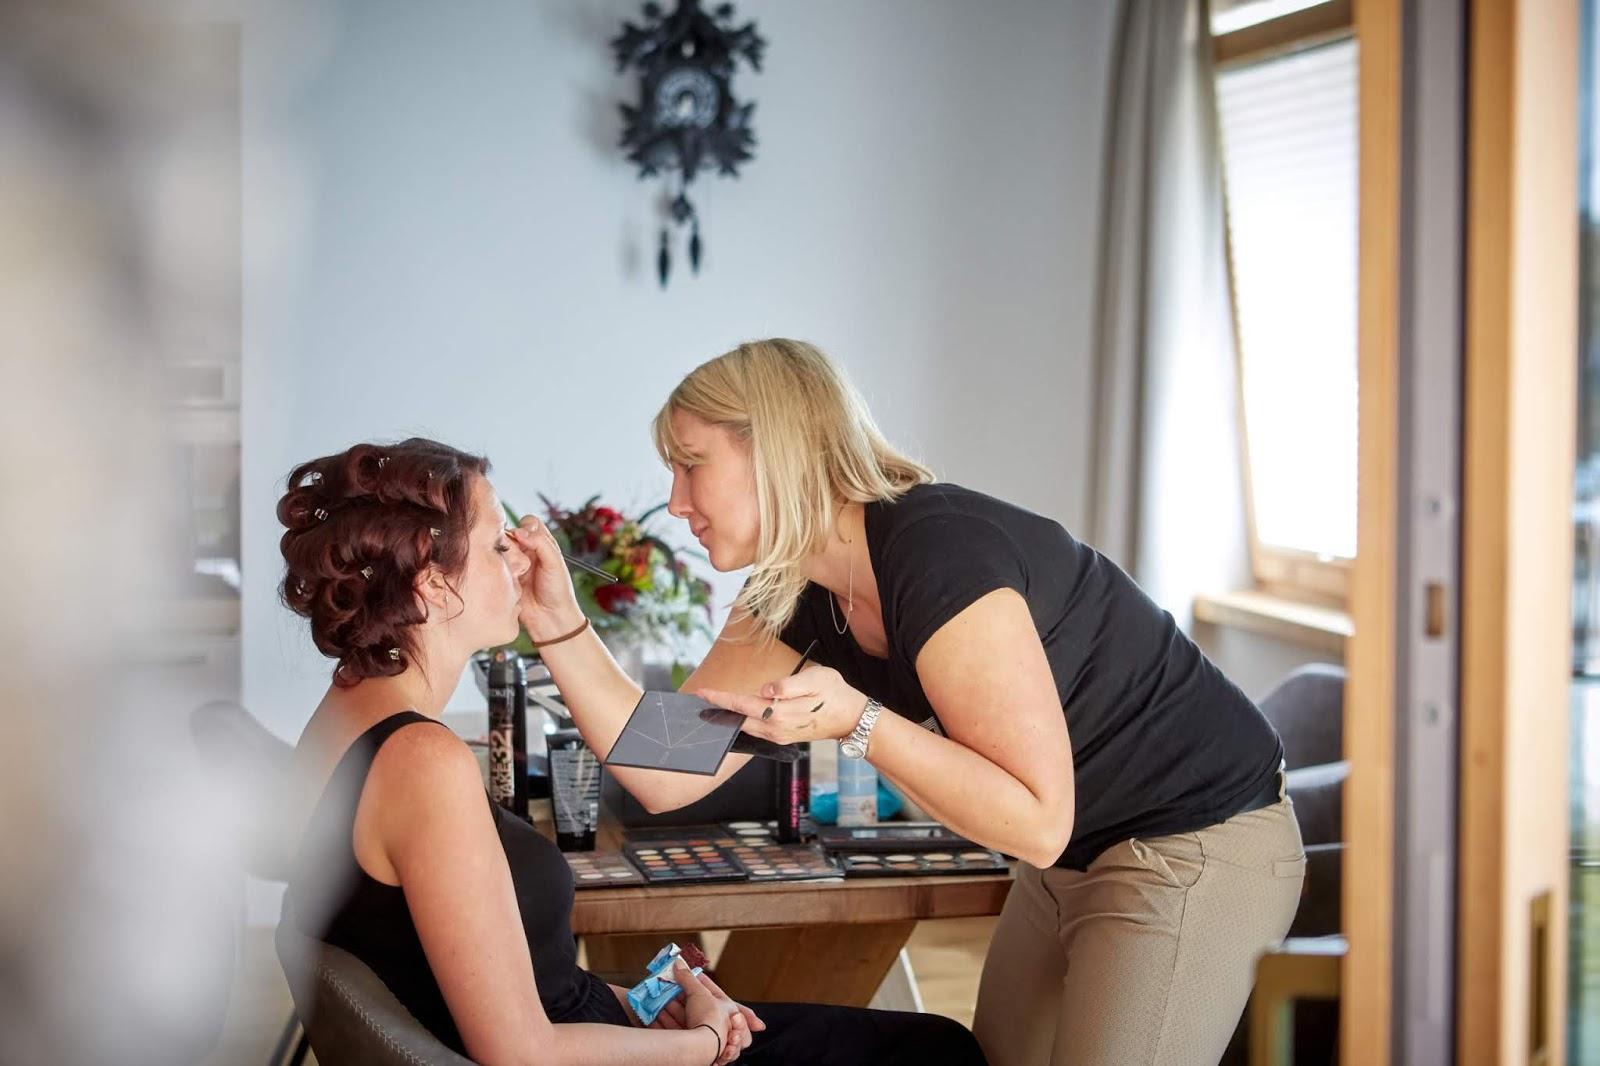 Getting ready, Brautstyling by Alpenkosmetik Stitz, Berghochzeit in Tirol, Mountain wedding, Pure Resort Pitztal, Fotograf Marc Gilsdorf Alpenwedding, Hochzeitsplaneragentur 4 weddings & events, Uschi Glas, Styled Shooting, Destination Wedding Austria, Brautmodell Jessica Eppich